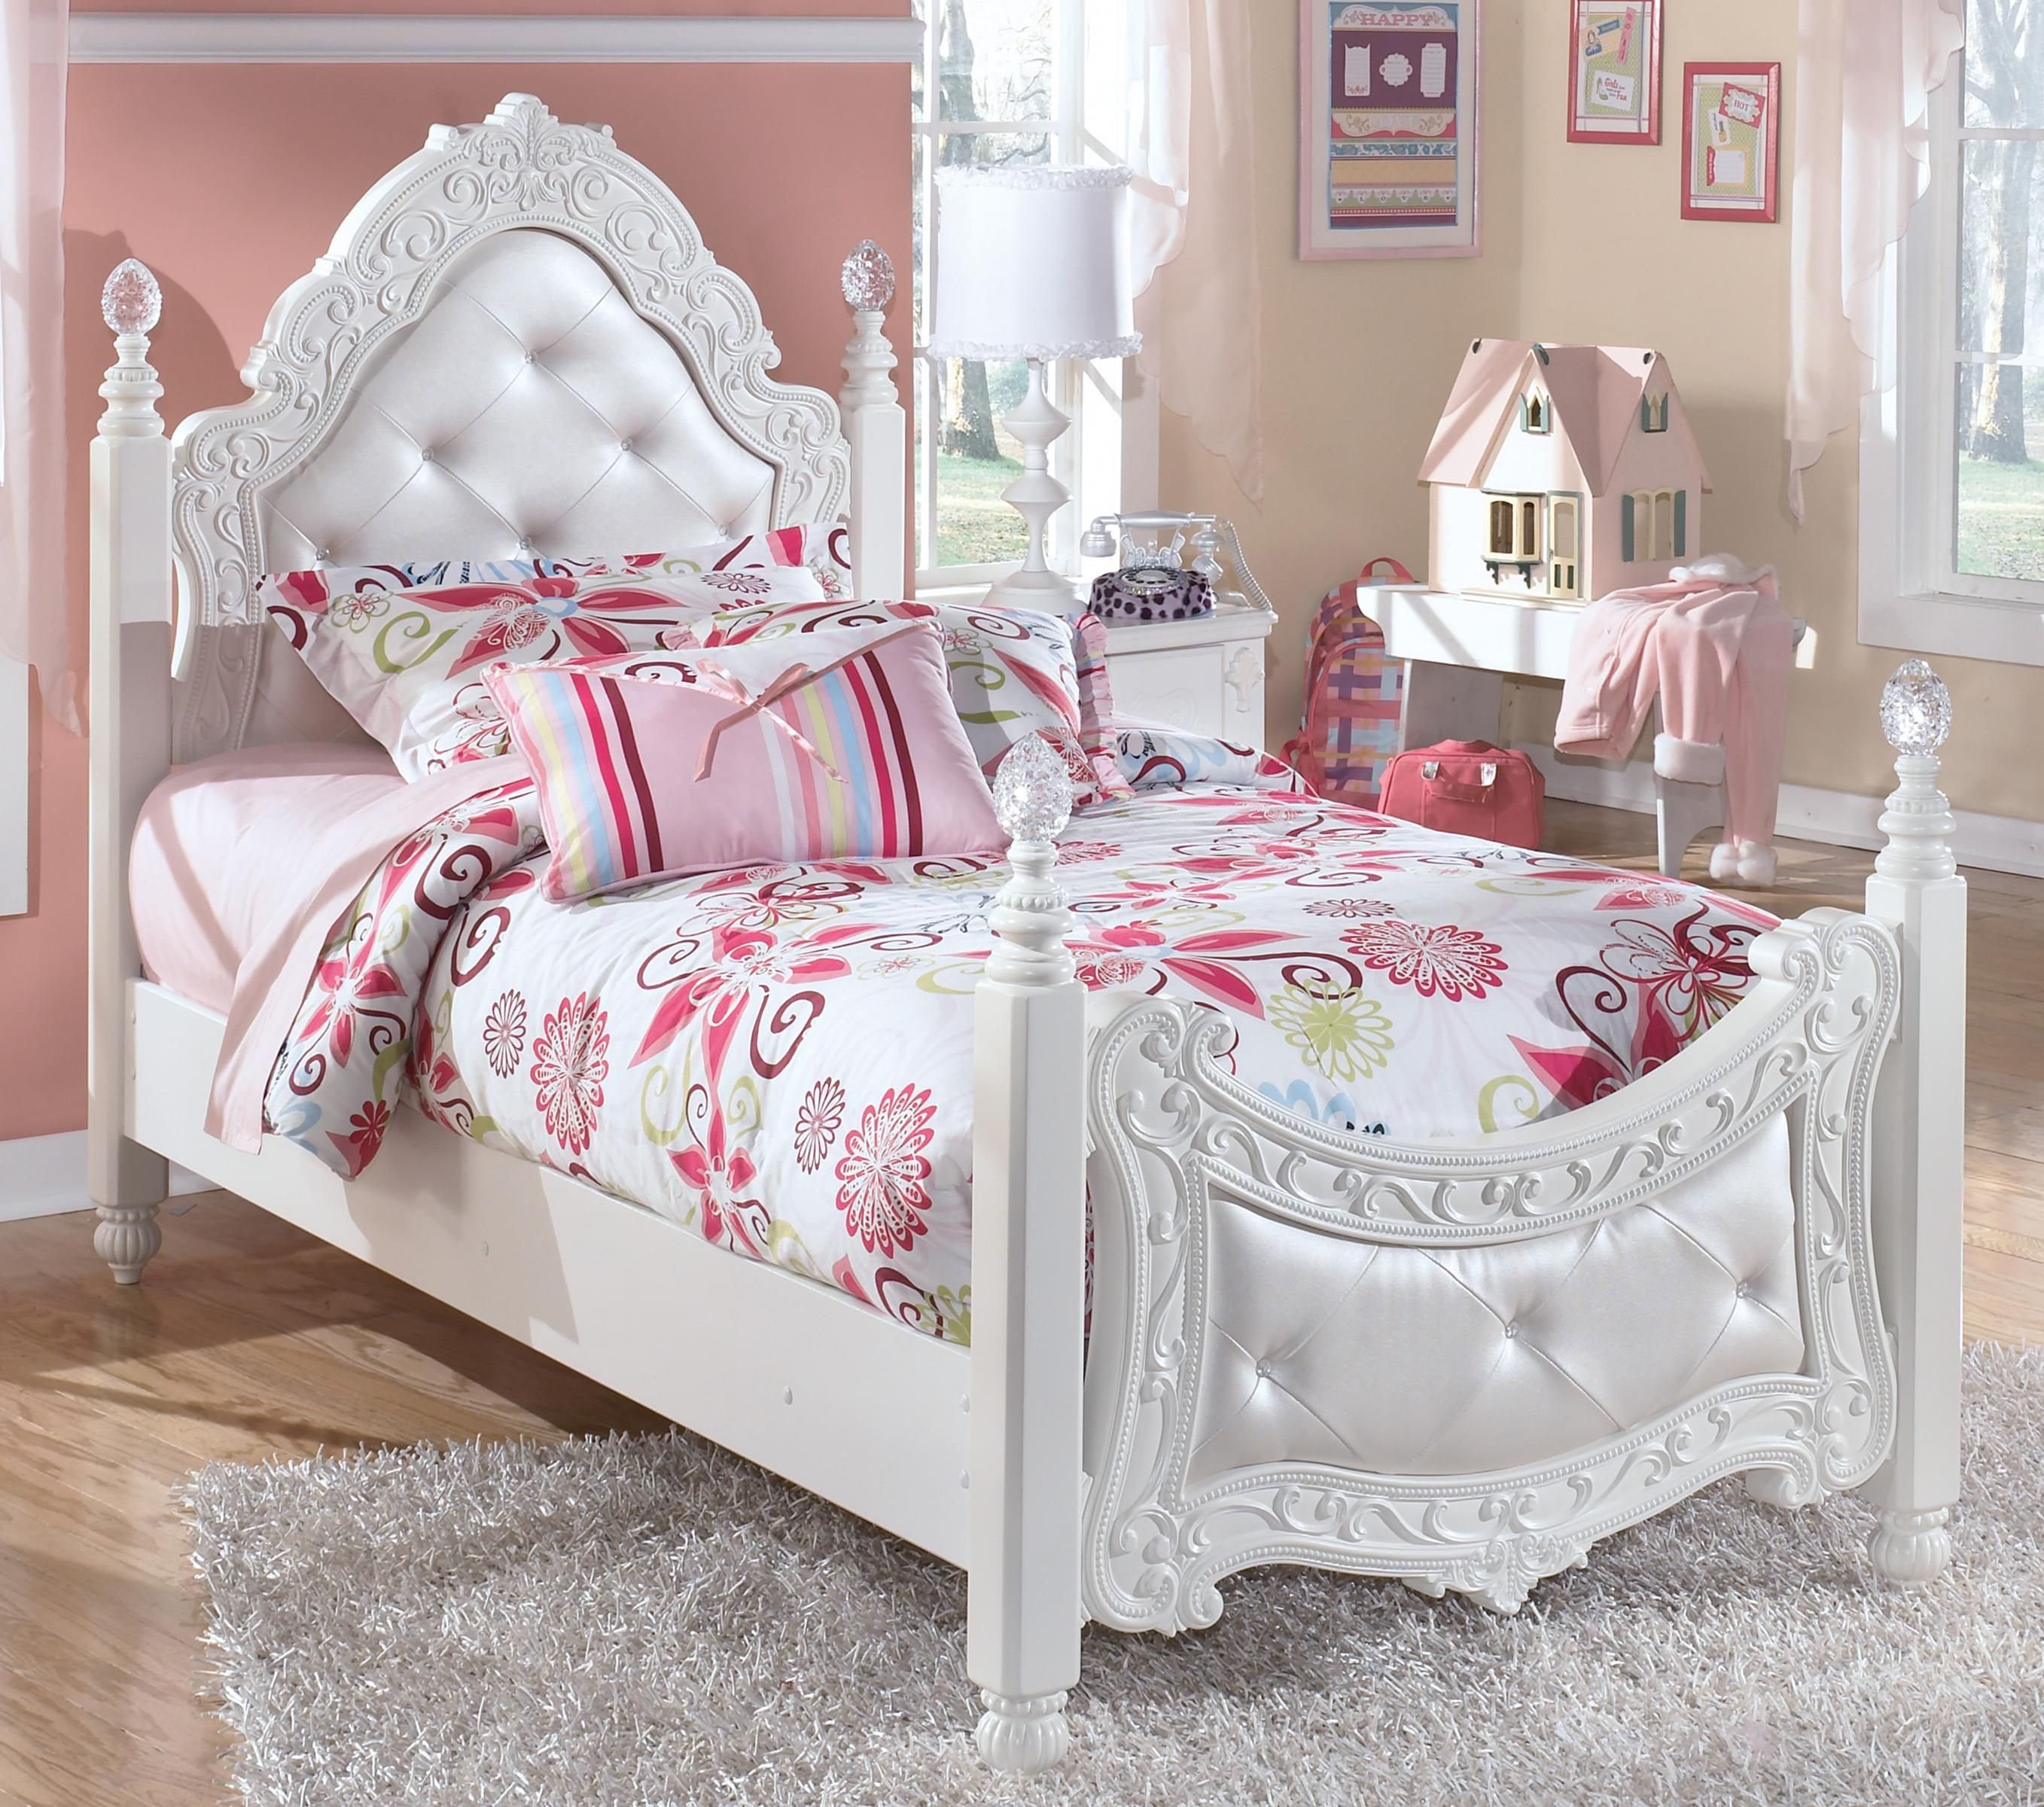 Exquisite Twin Ornate Poster Bed with Tufted Headboard